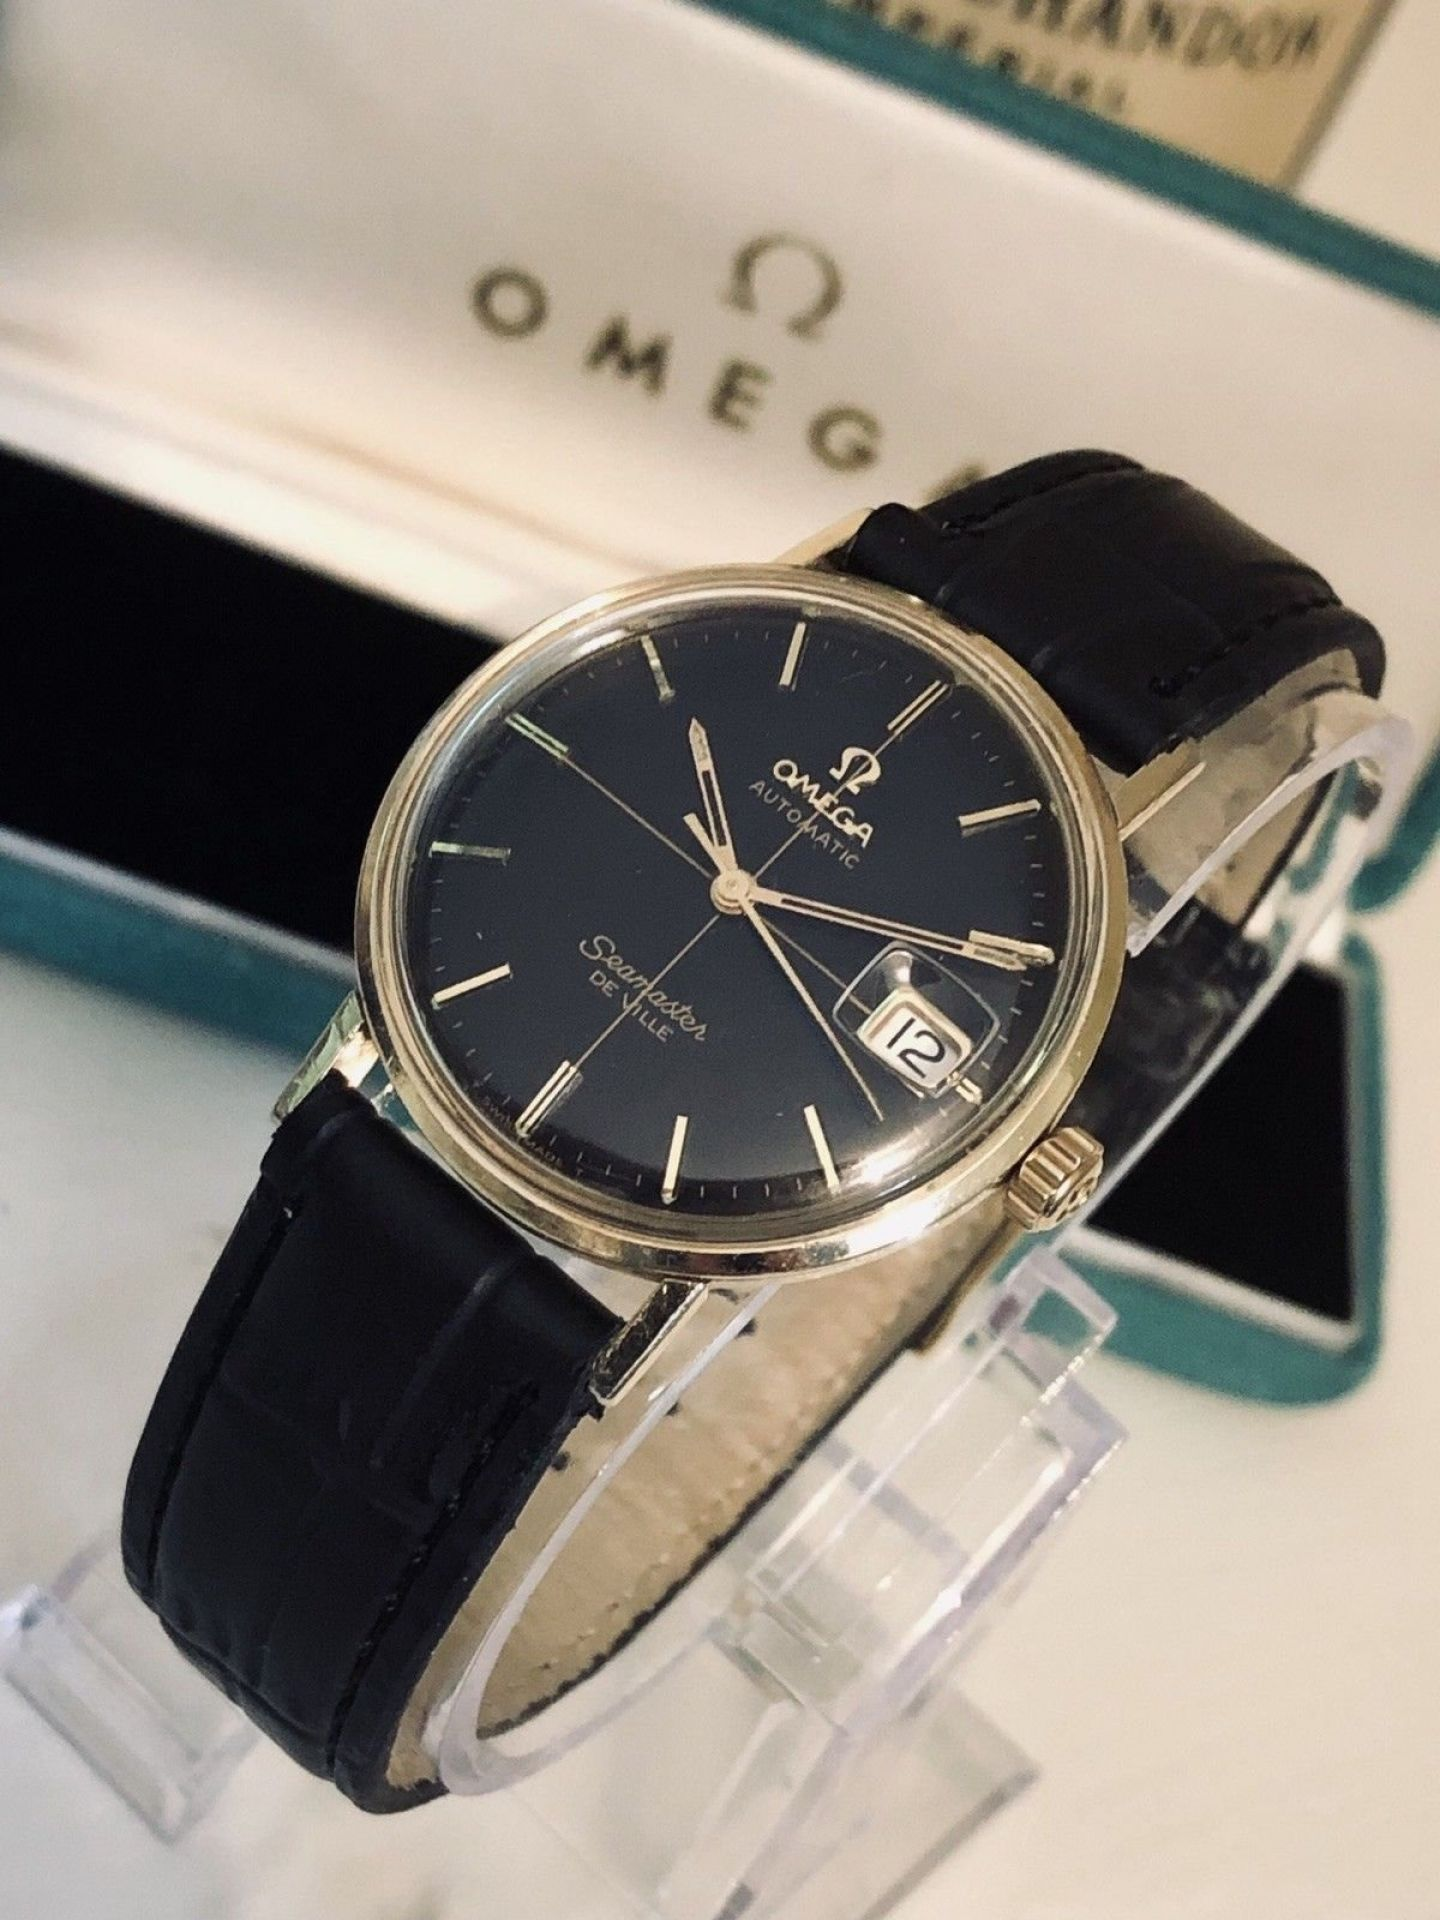 OMEGA SEAMASTER DE VILLE VINTAGE WATCH MECHANICAL AUTOMATIC CAL